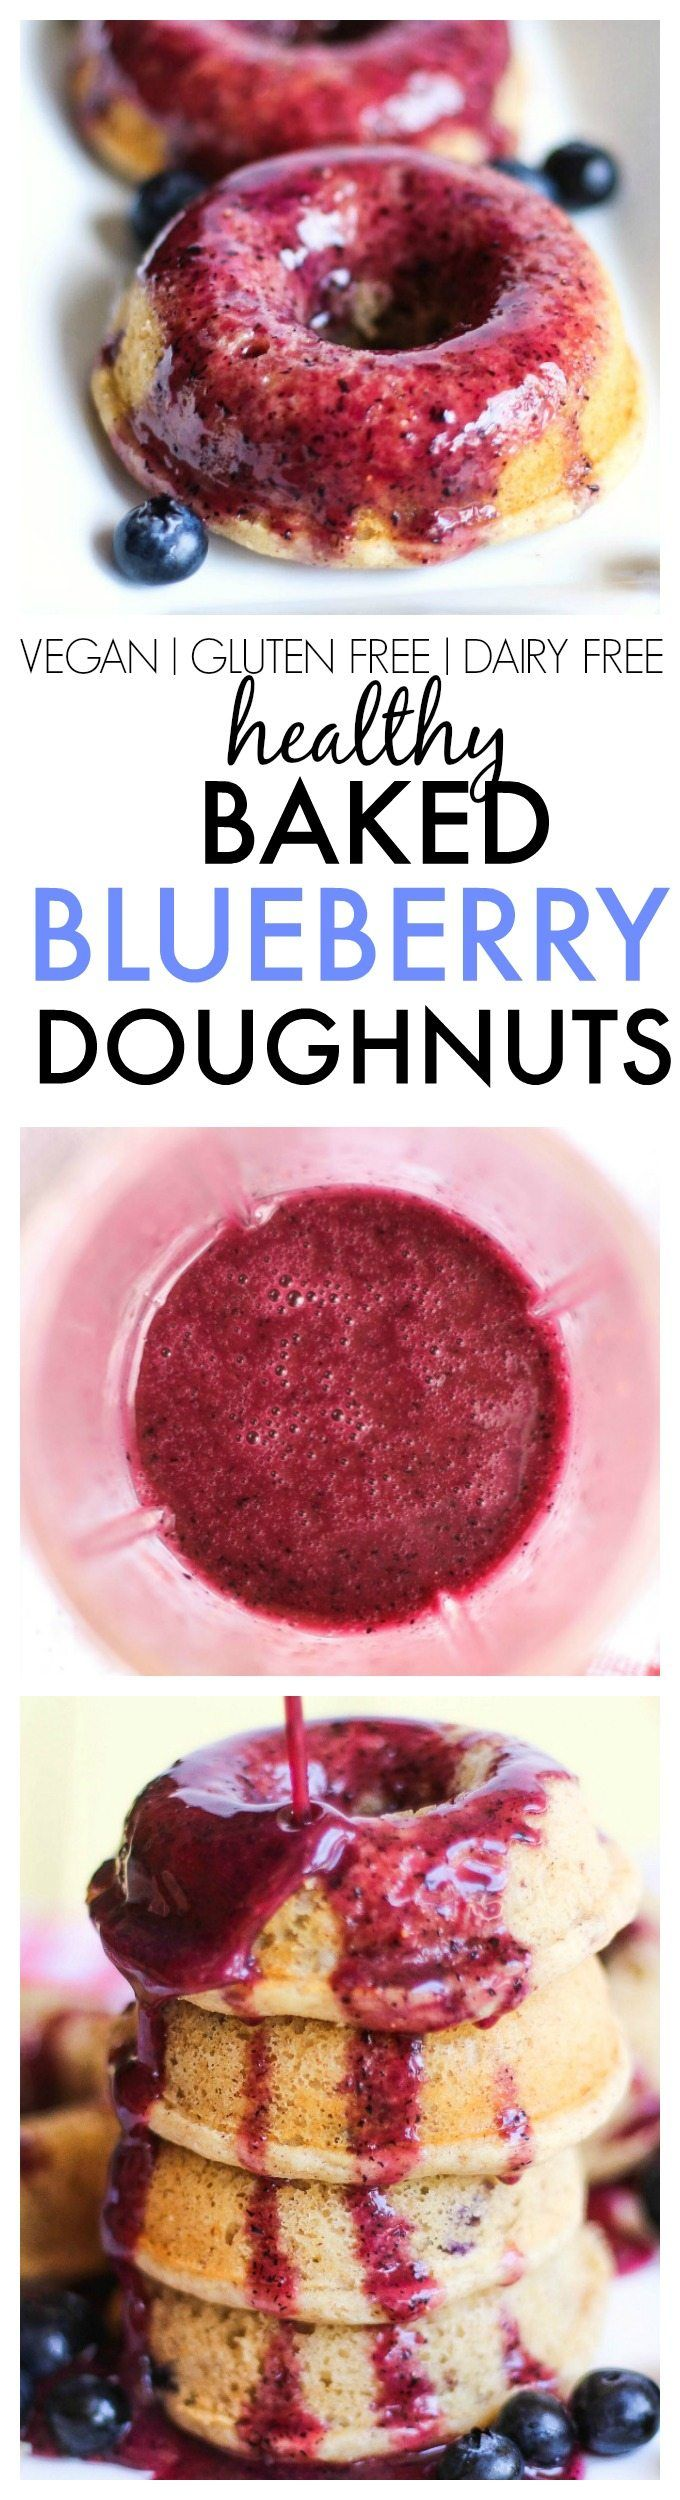 ... Baked Blueberry Donuts on Pinterest | Making Donuts, Donuts and Donut